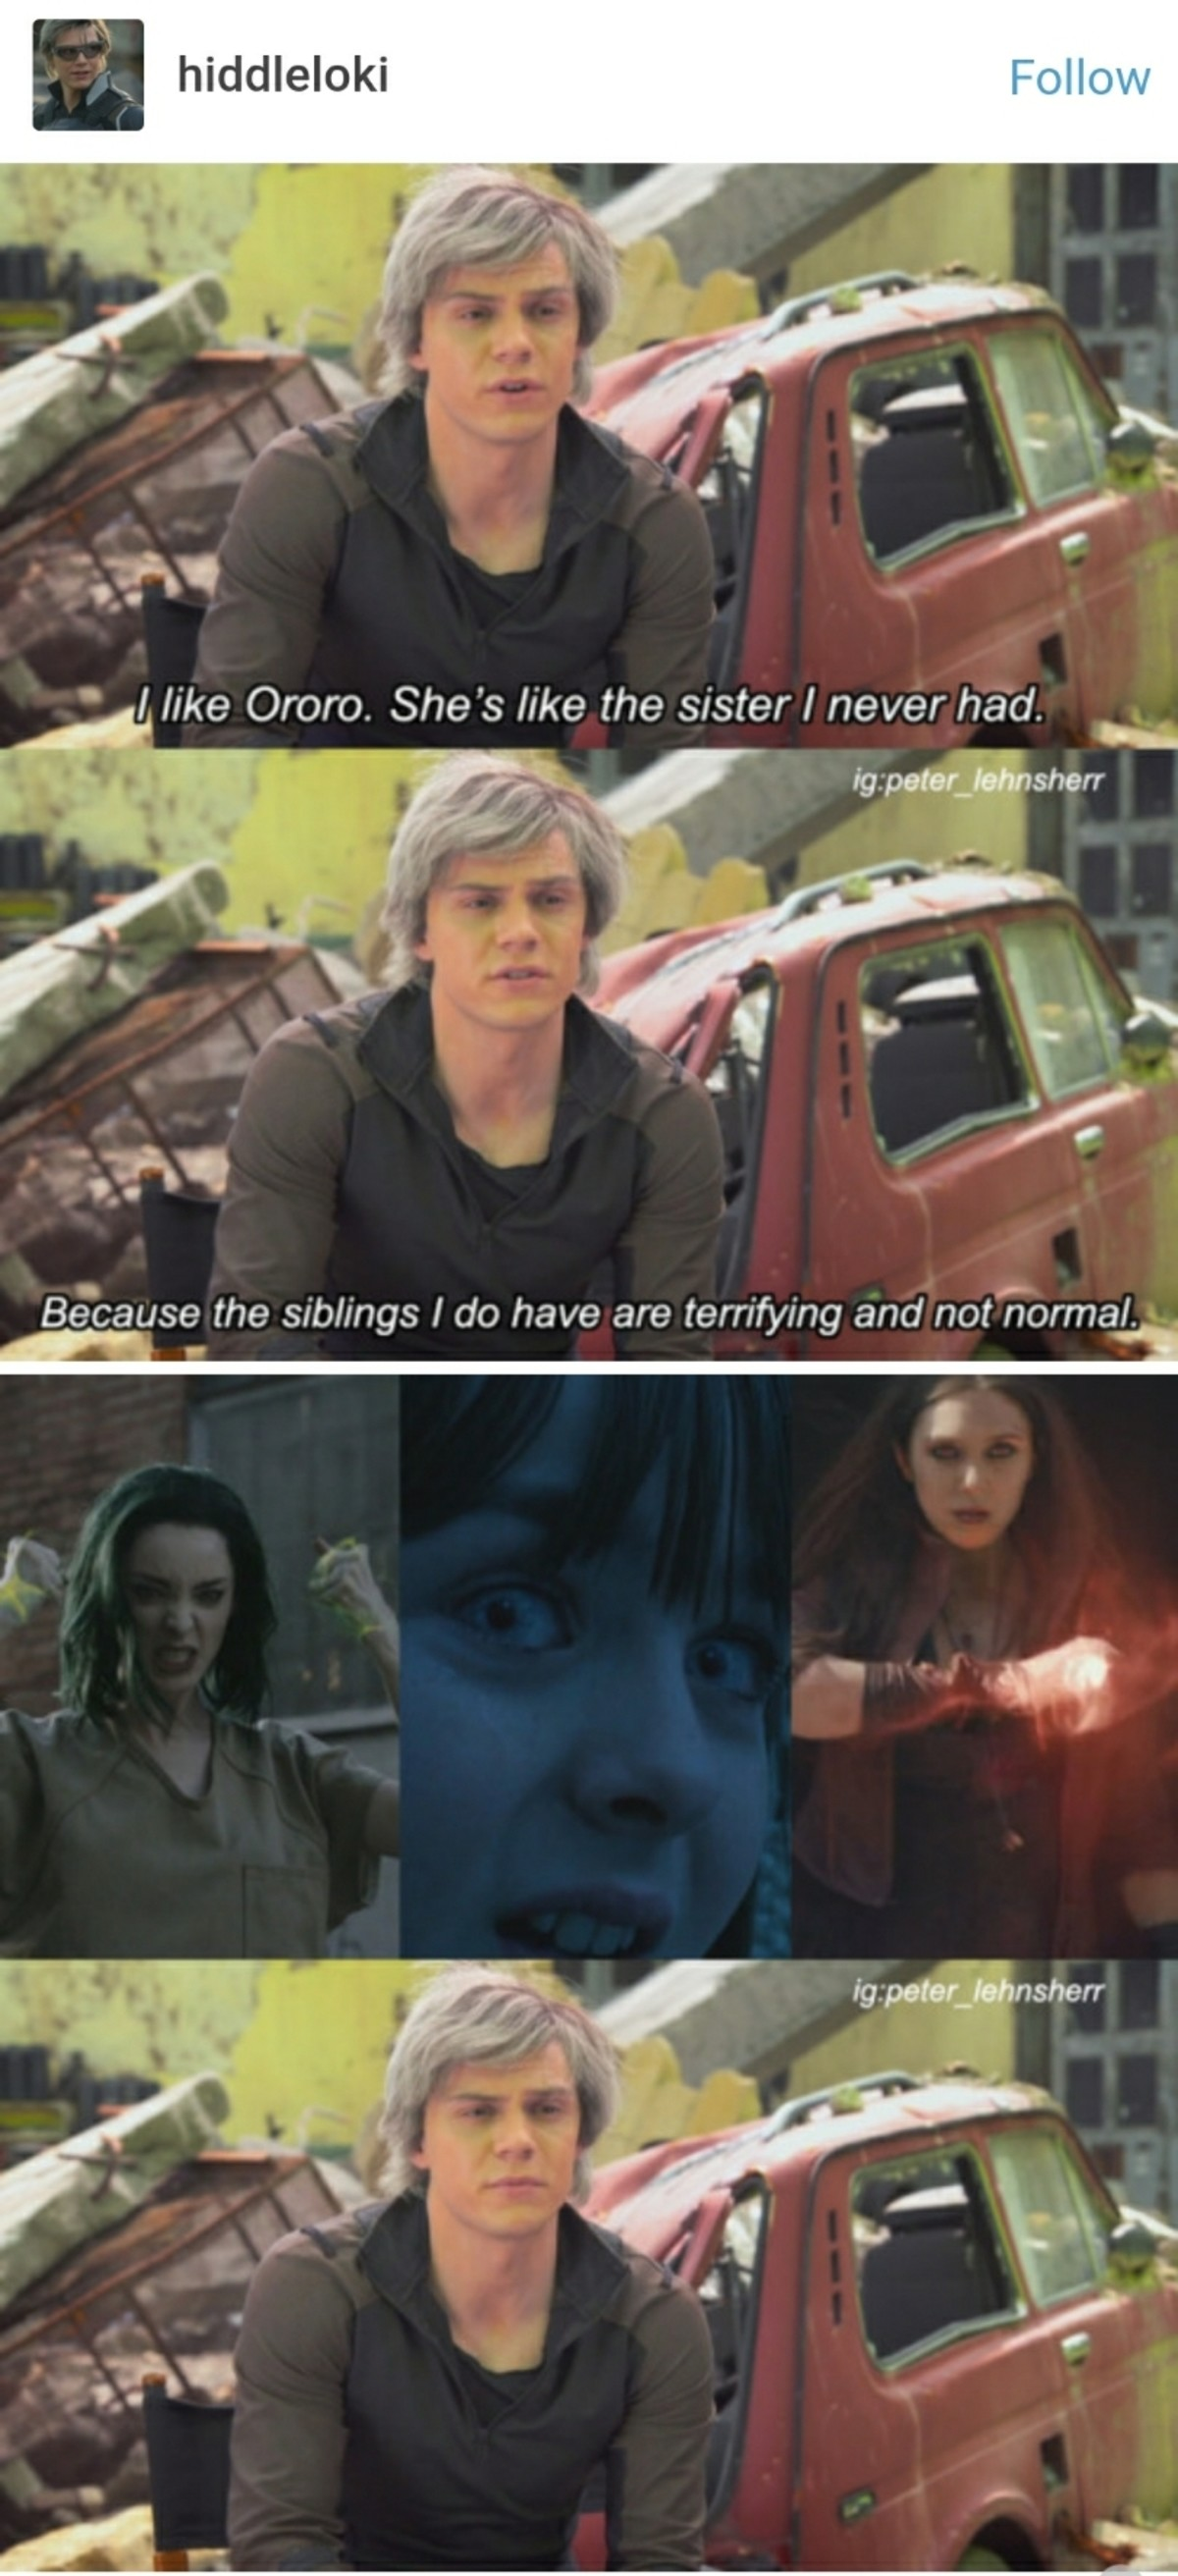 Siblings amiright. . Beacause the siblings I do have are terrifying and . _ '. who are the other two chicks next to scarlet witch? I know im an idiot but i dont know